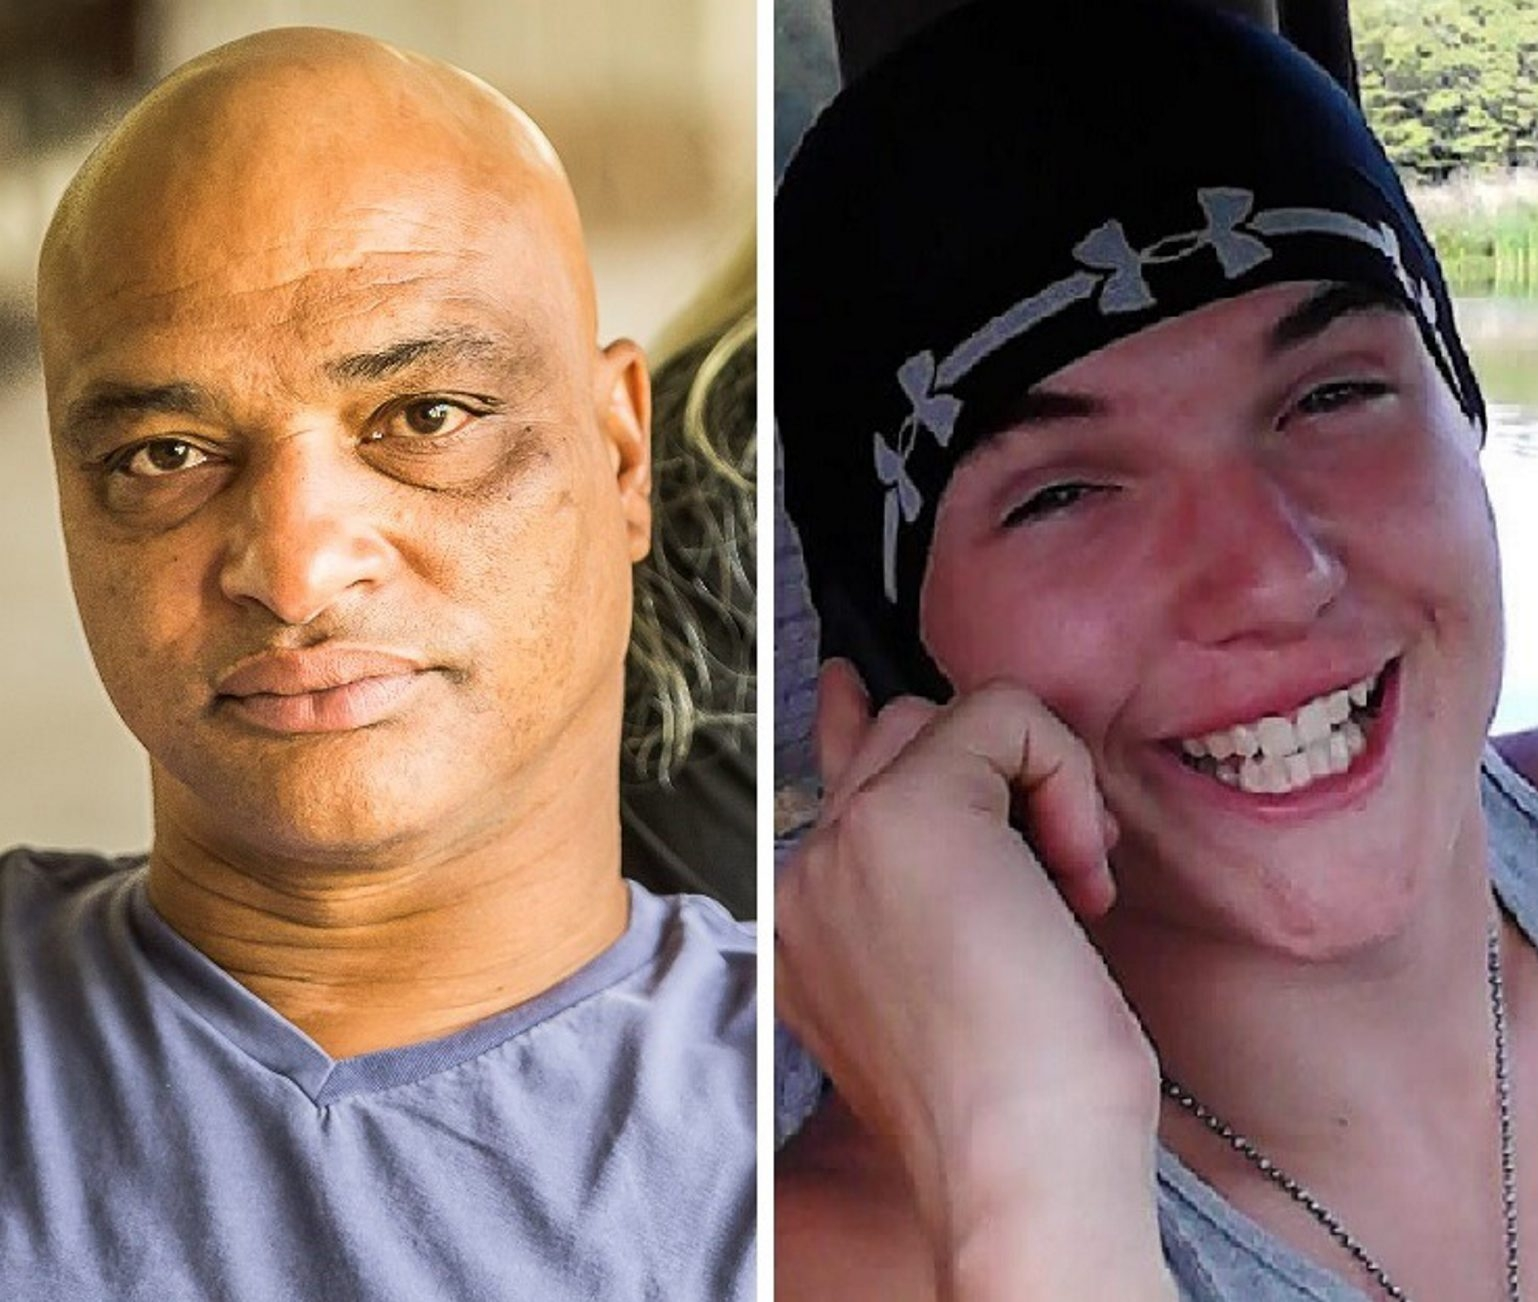 Former Buffalo Bill Darryl Talley, left, is experiencing suicidal depression he suspects is caused by collisions on the football field, while Damon Janes, right, died a year ago after suffering multiple blows to the head in two high school football games.